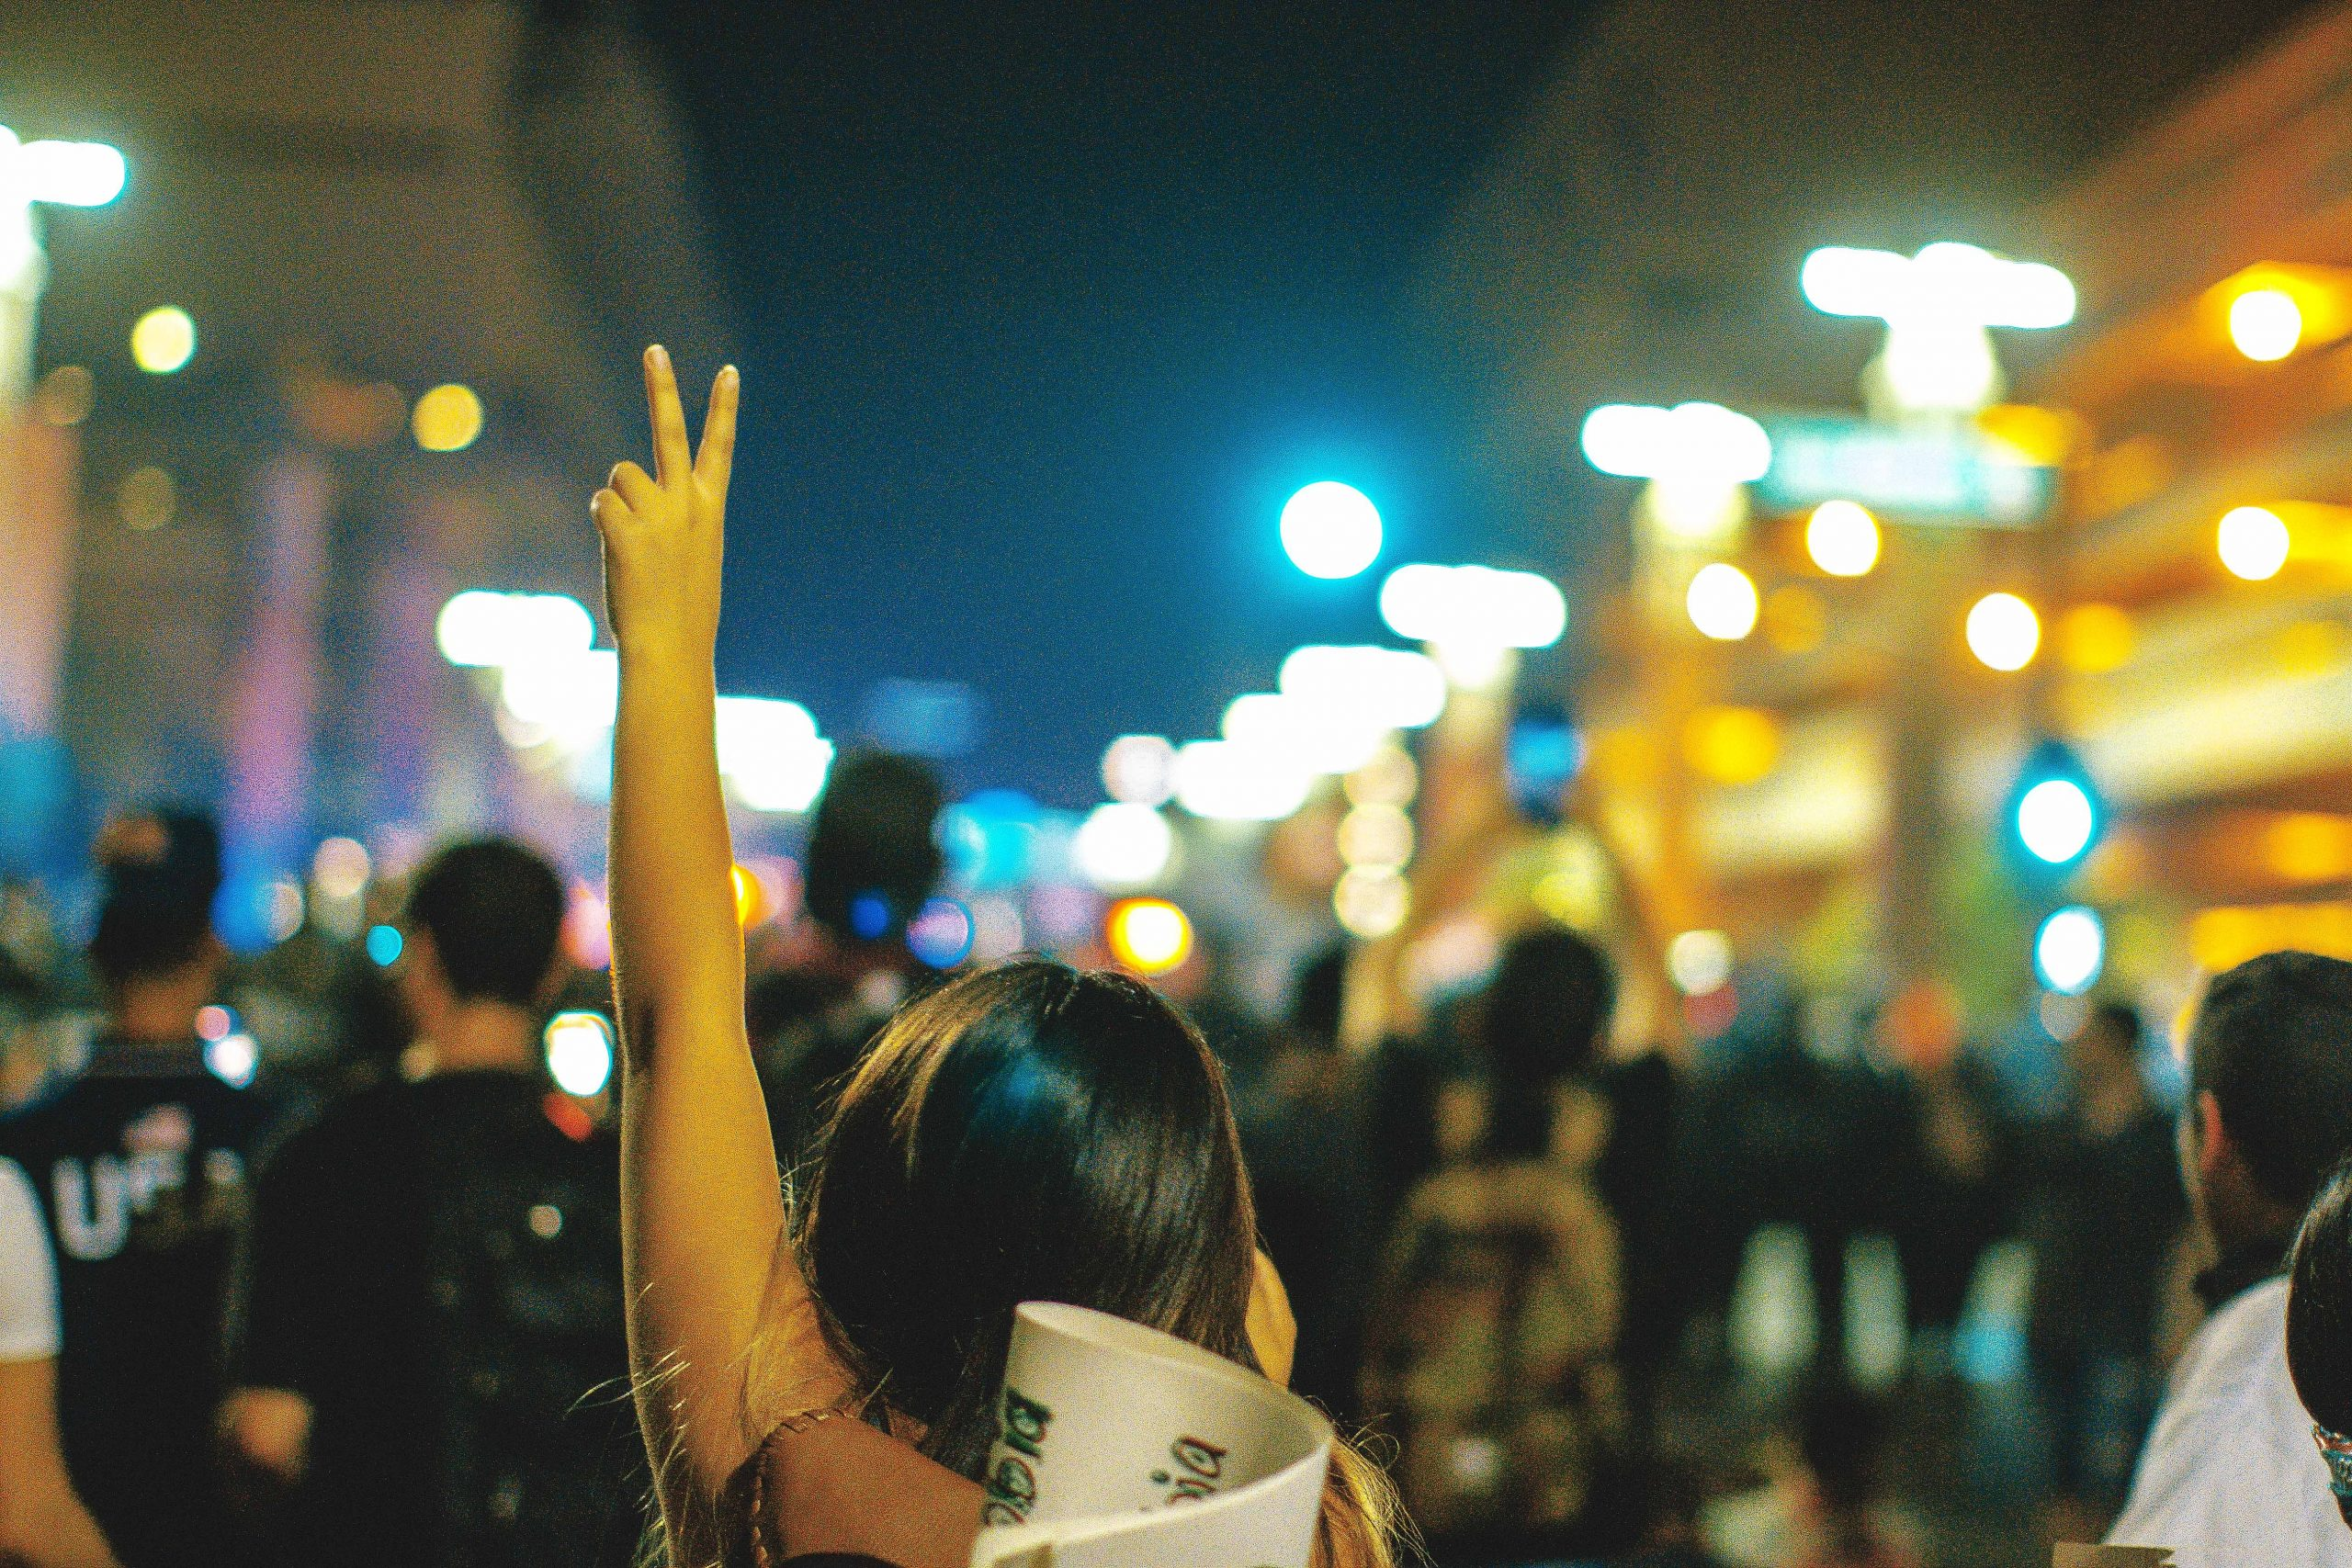 Girl with hand in a peace sign at a protest or march